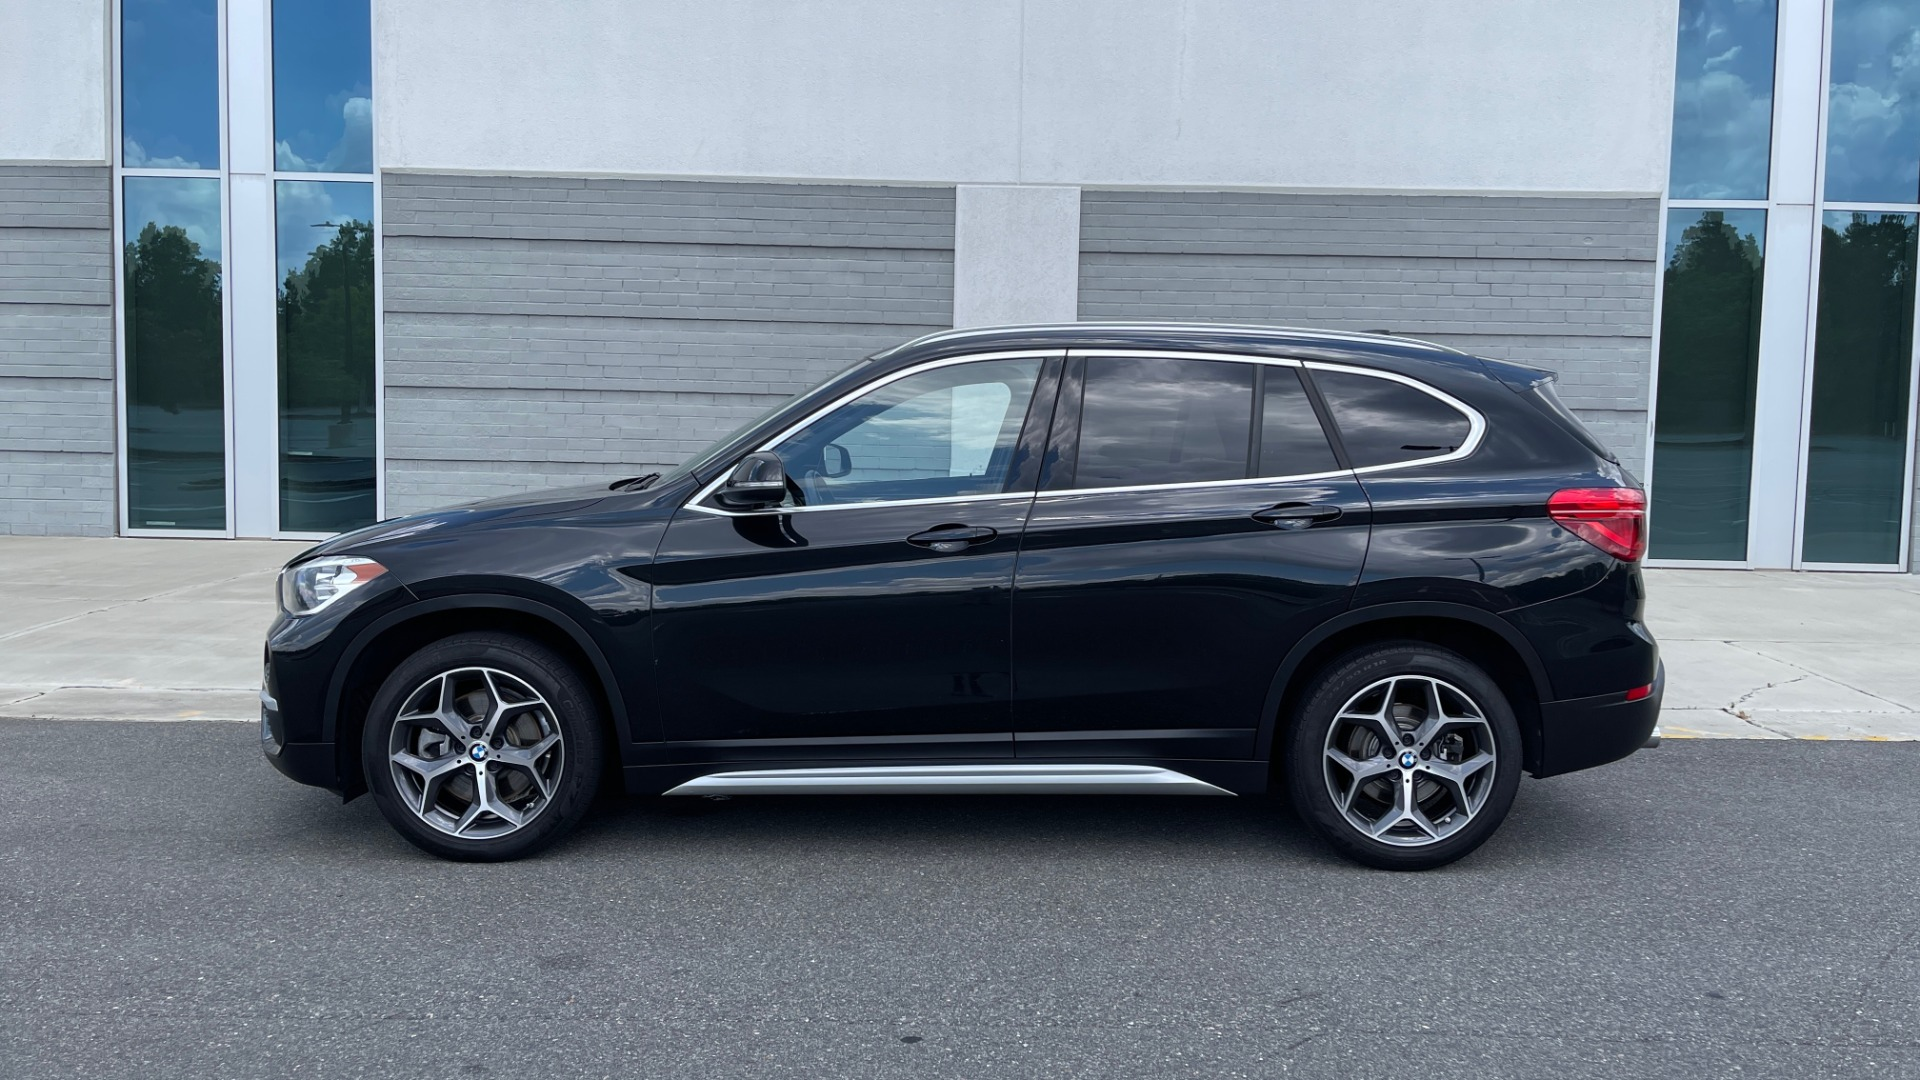 Used 2018 BMW X1 XDRIVE28I / NAV / CONV PKG / HTD STS / PANO-ROOF / REARVIEW for sale $29,995 at Formula Imports in Charlotte NC 28227 4